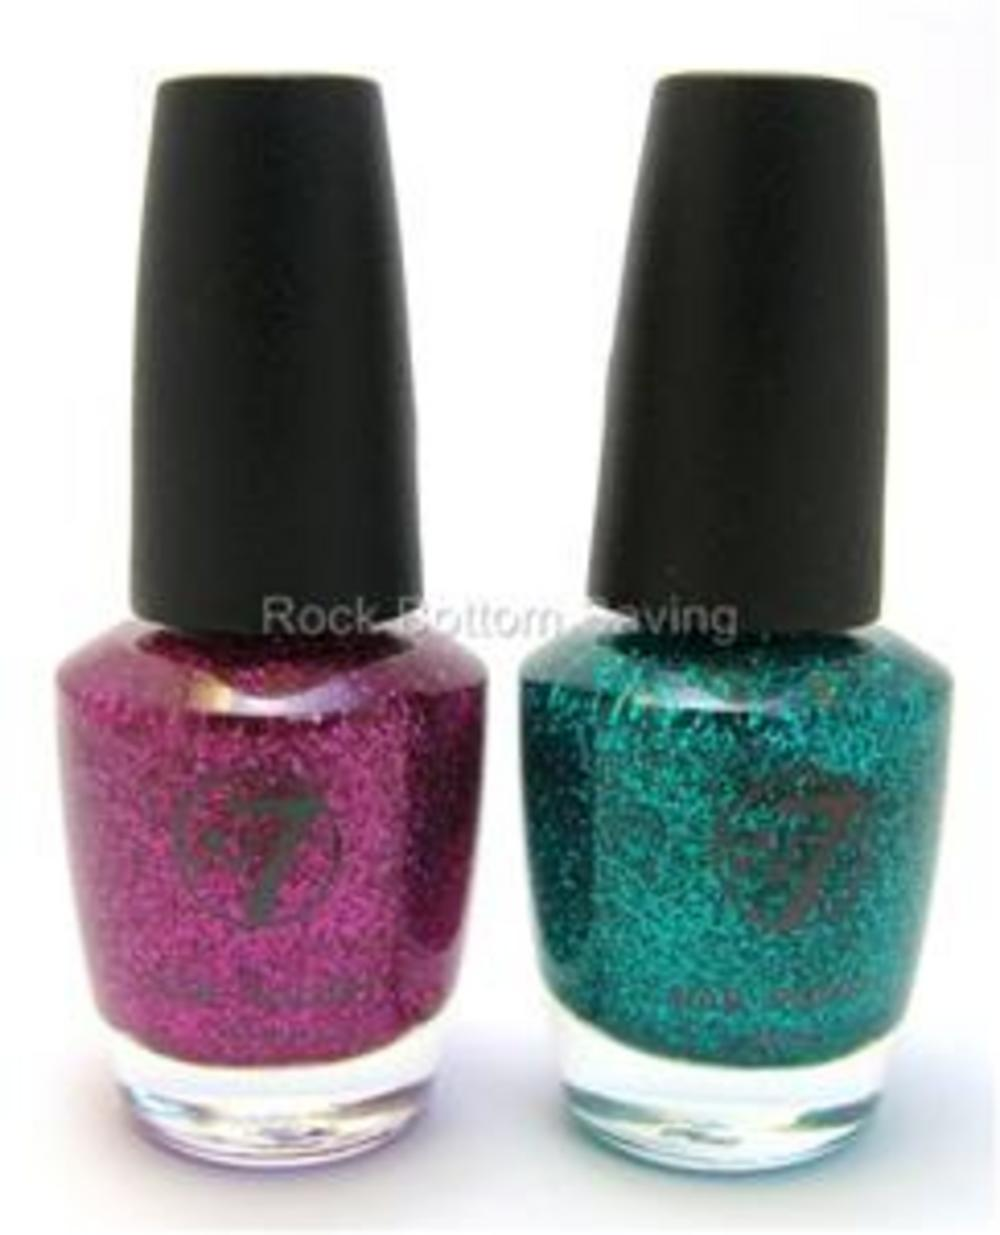 Green Glitter Nail Polish Uk: 2 X W7 Glitter Nail Polish Varnish Pink & Green Dazzle